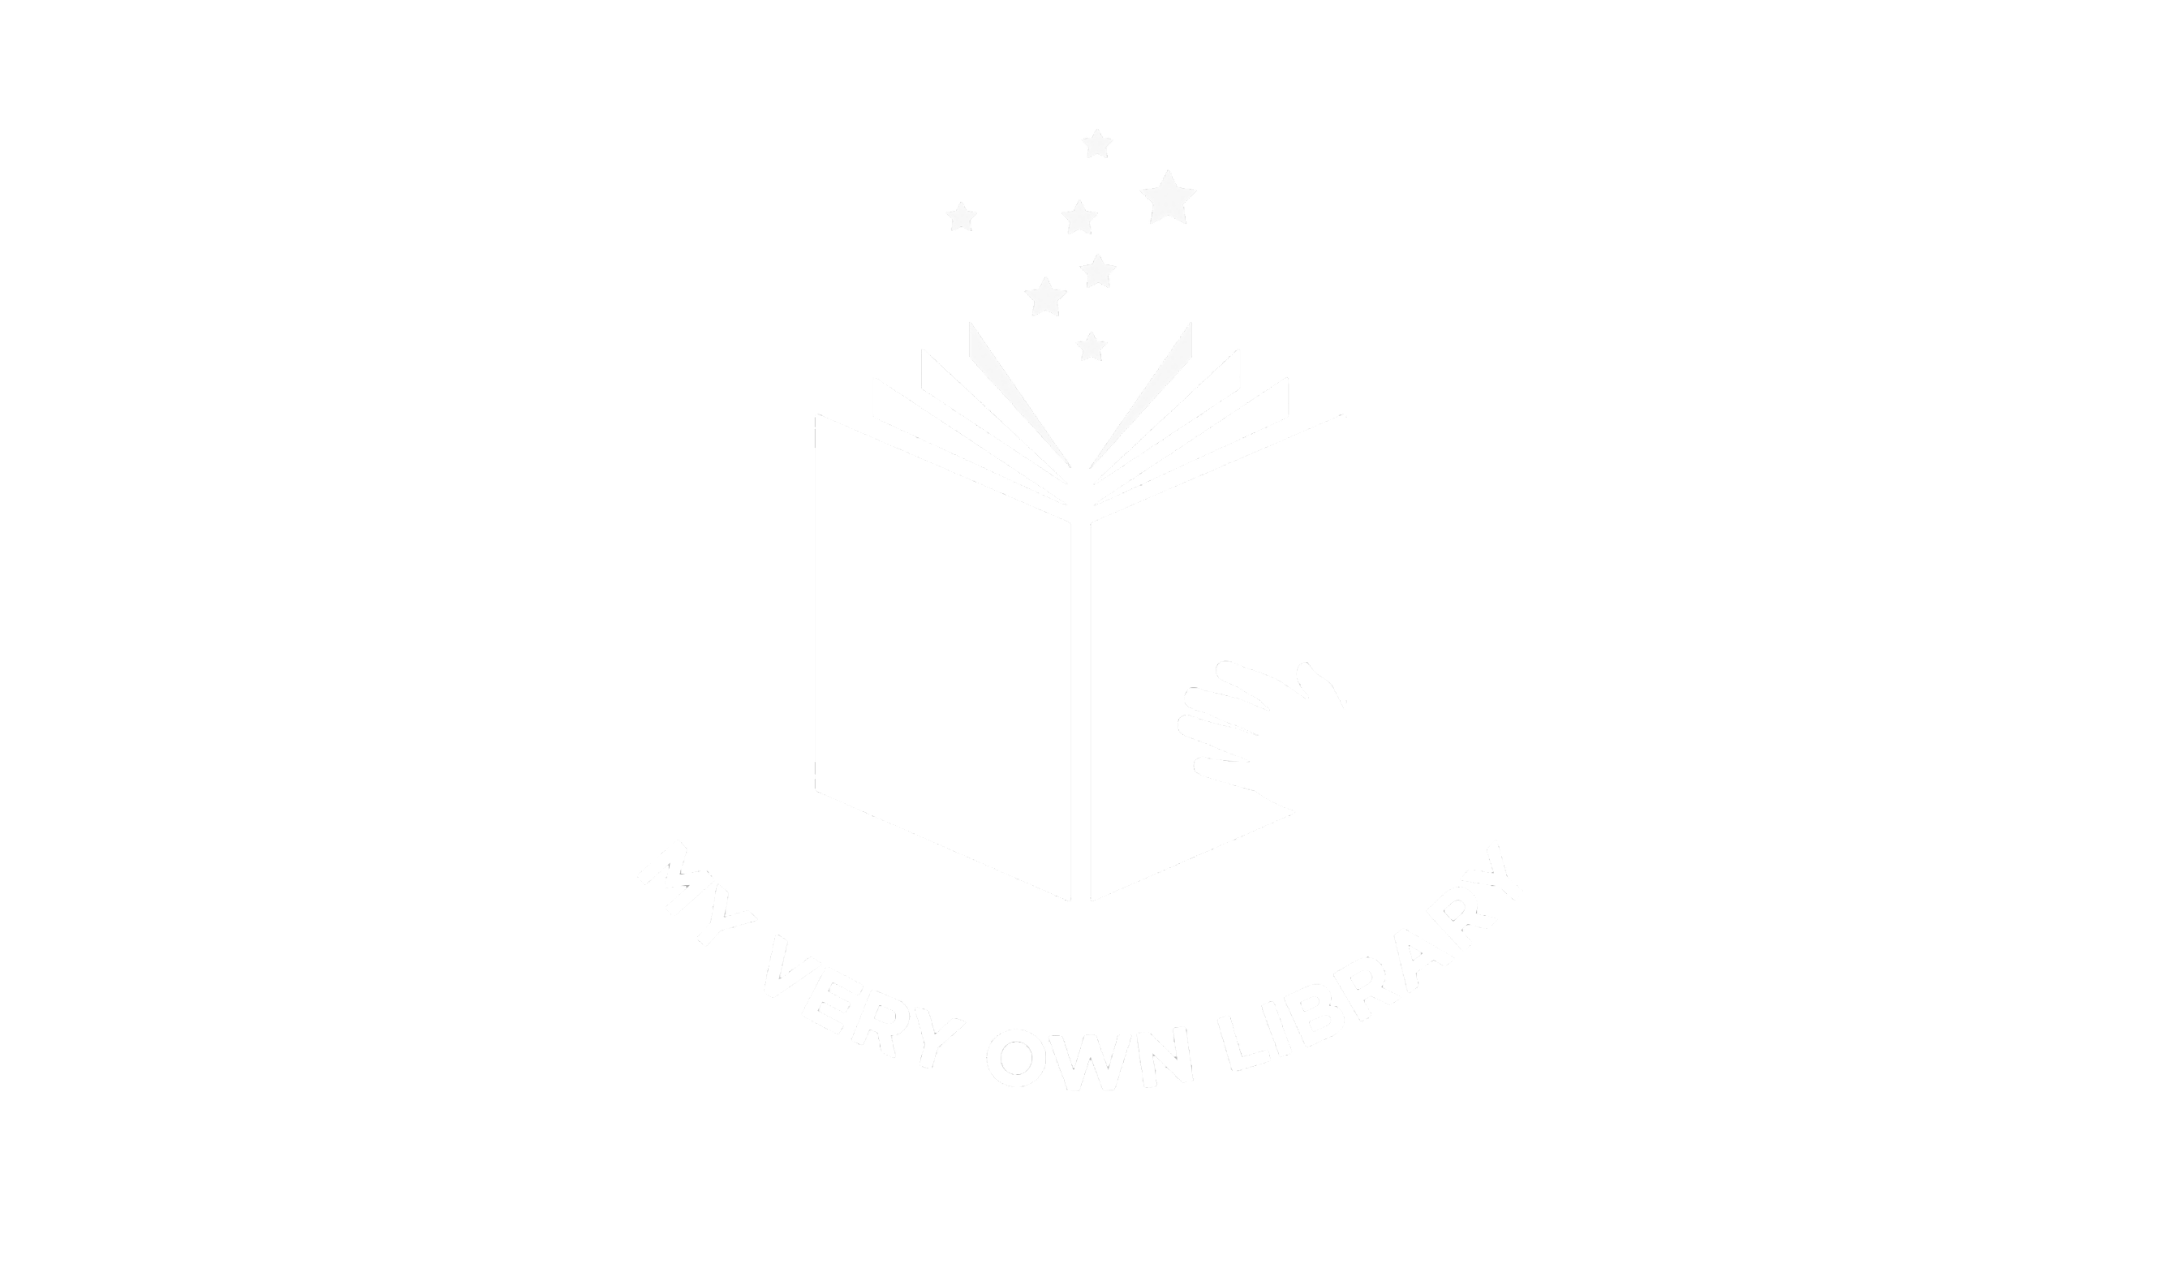 My Very Own Library logo